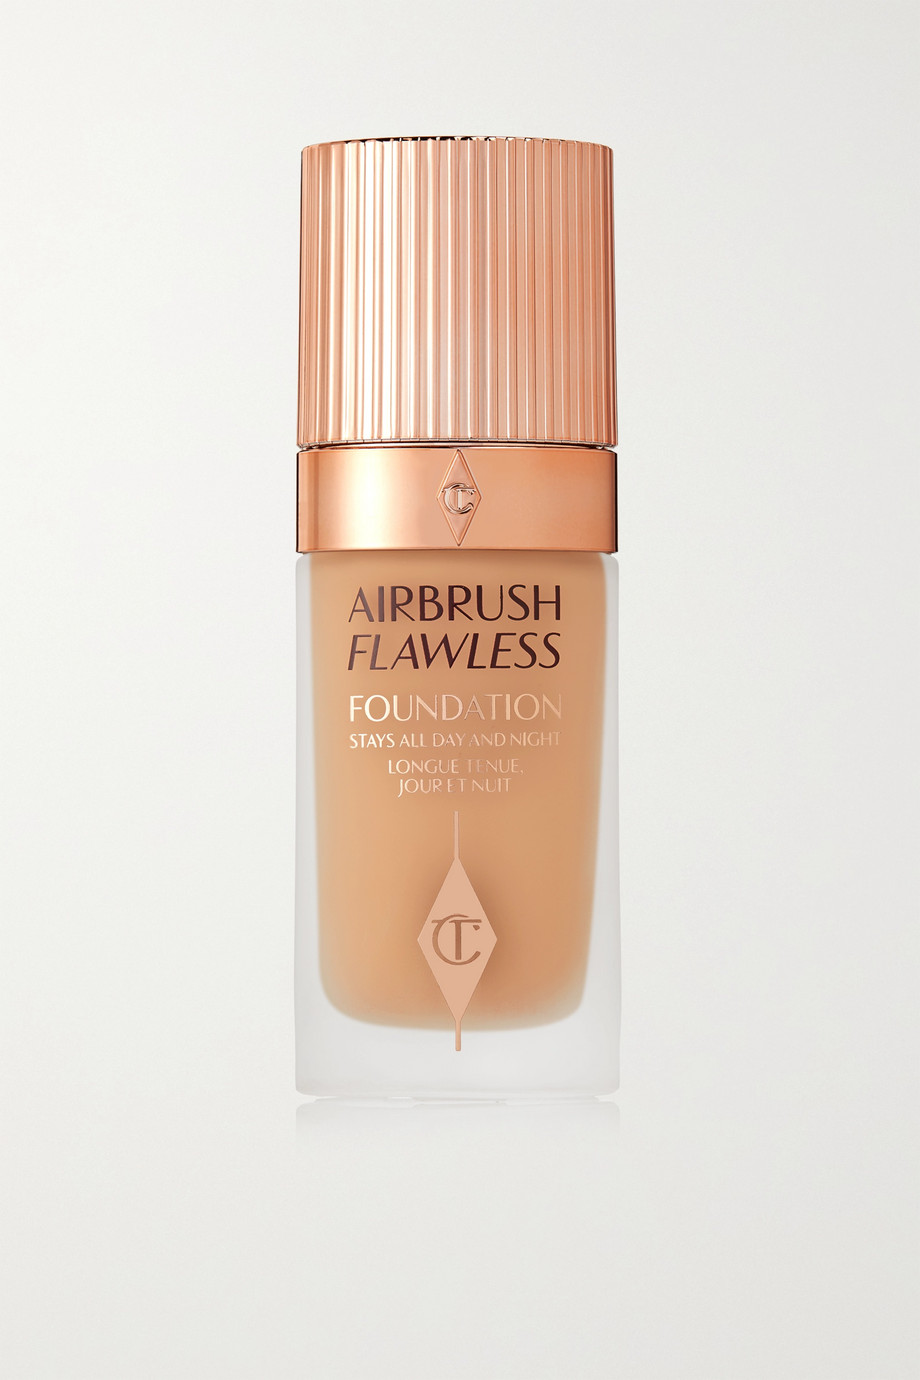 Charlotte Tilbury Airbrush Flawless Foundation – 5 Neutral, 30 ml – Foundation